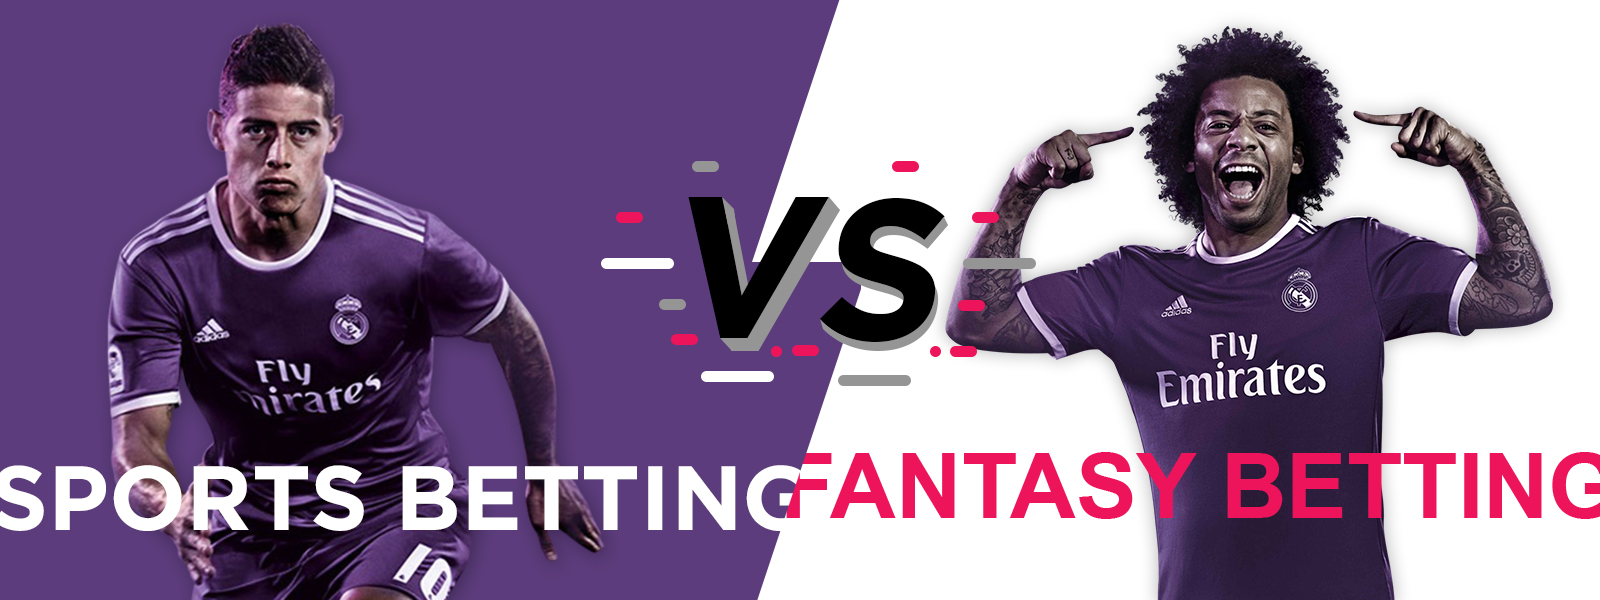 Sports Betting Vs Fantasy Betting